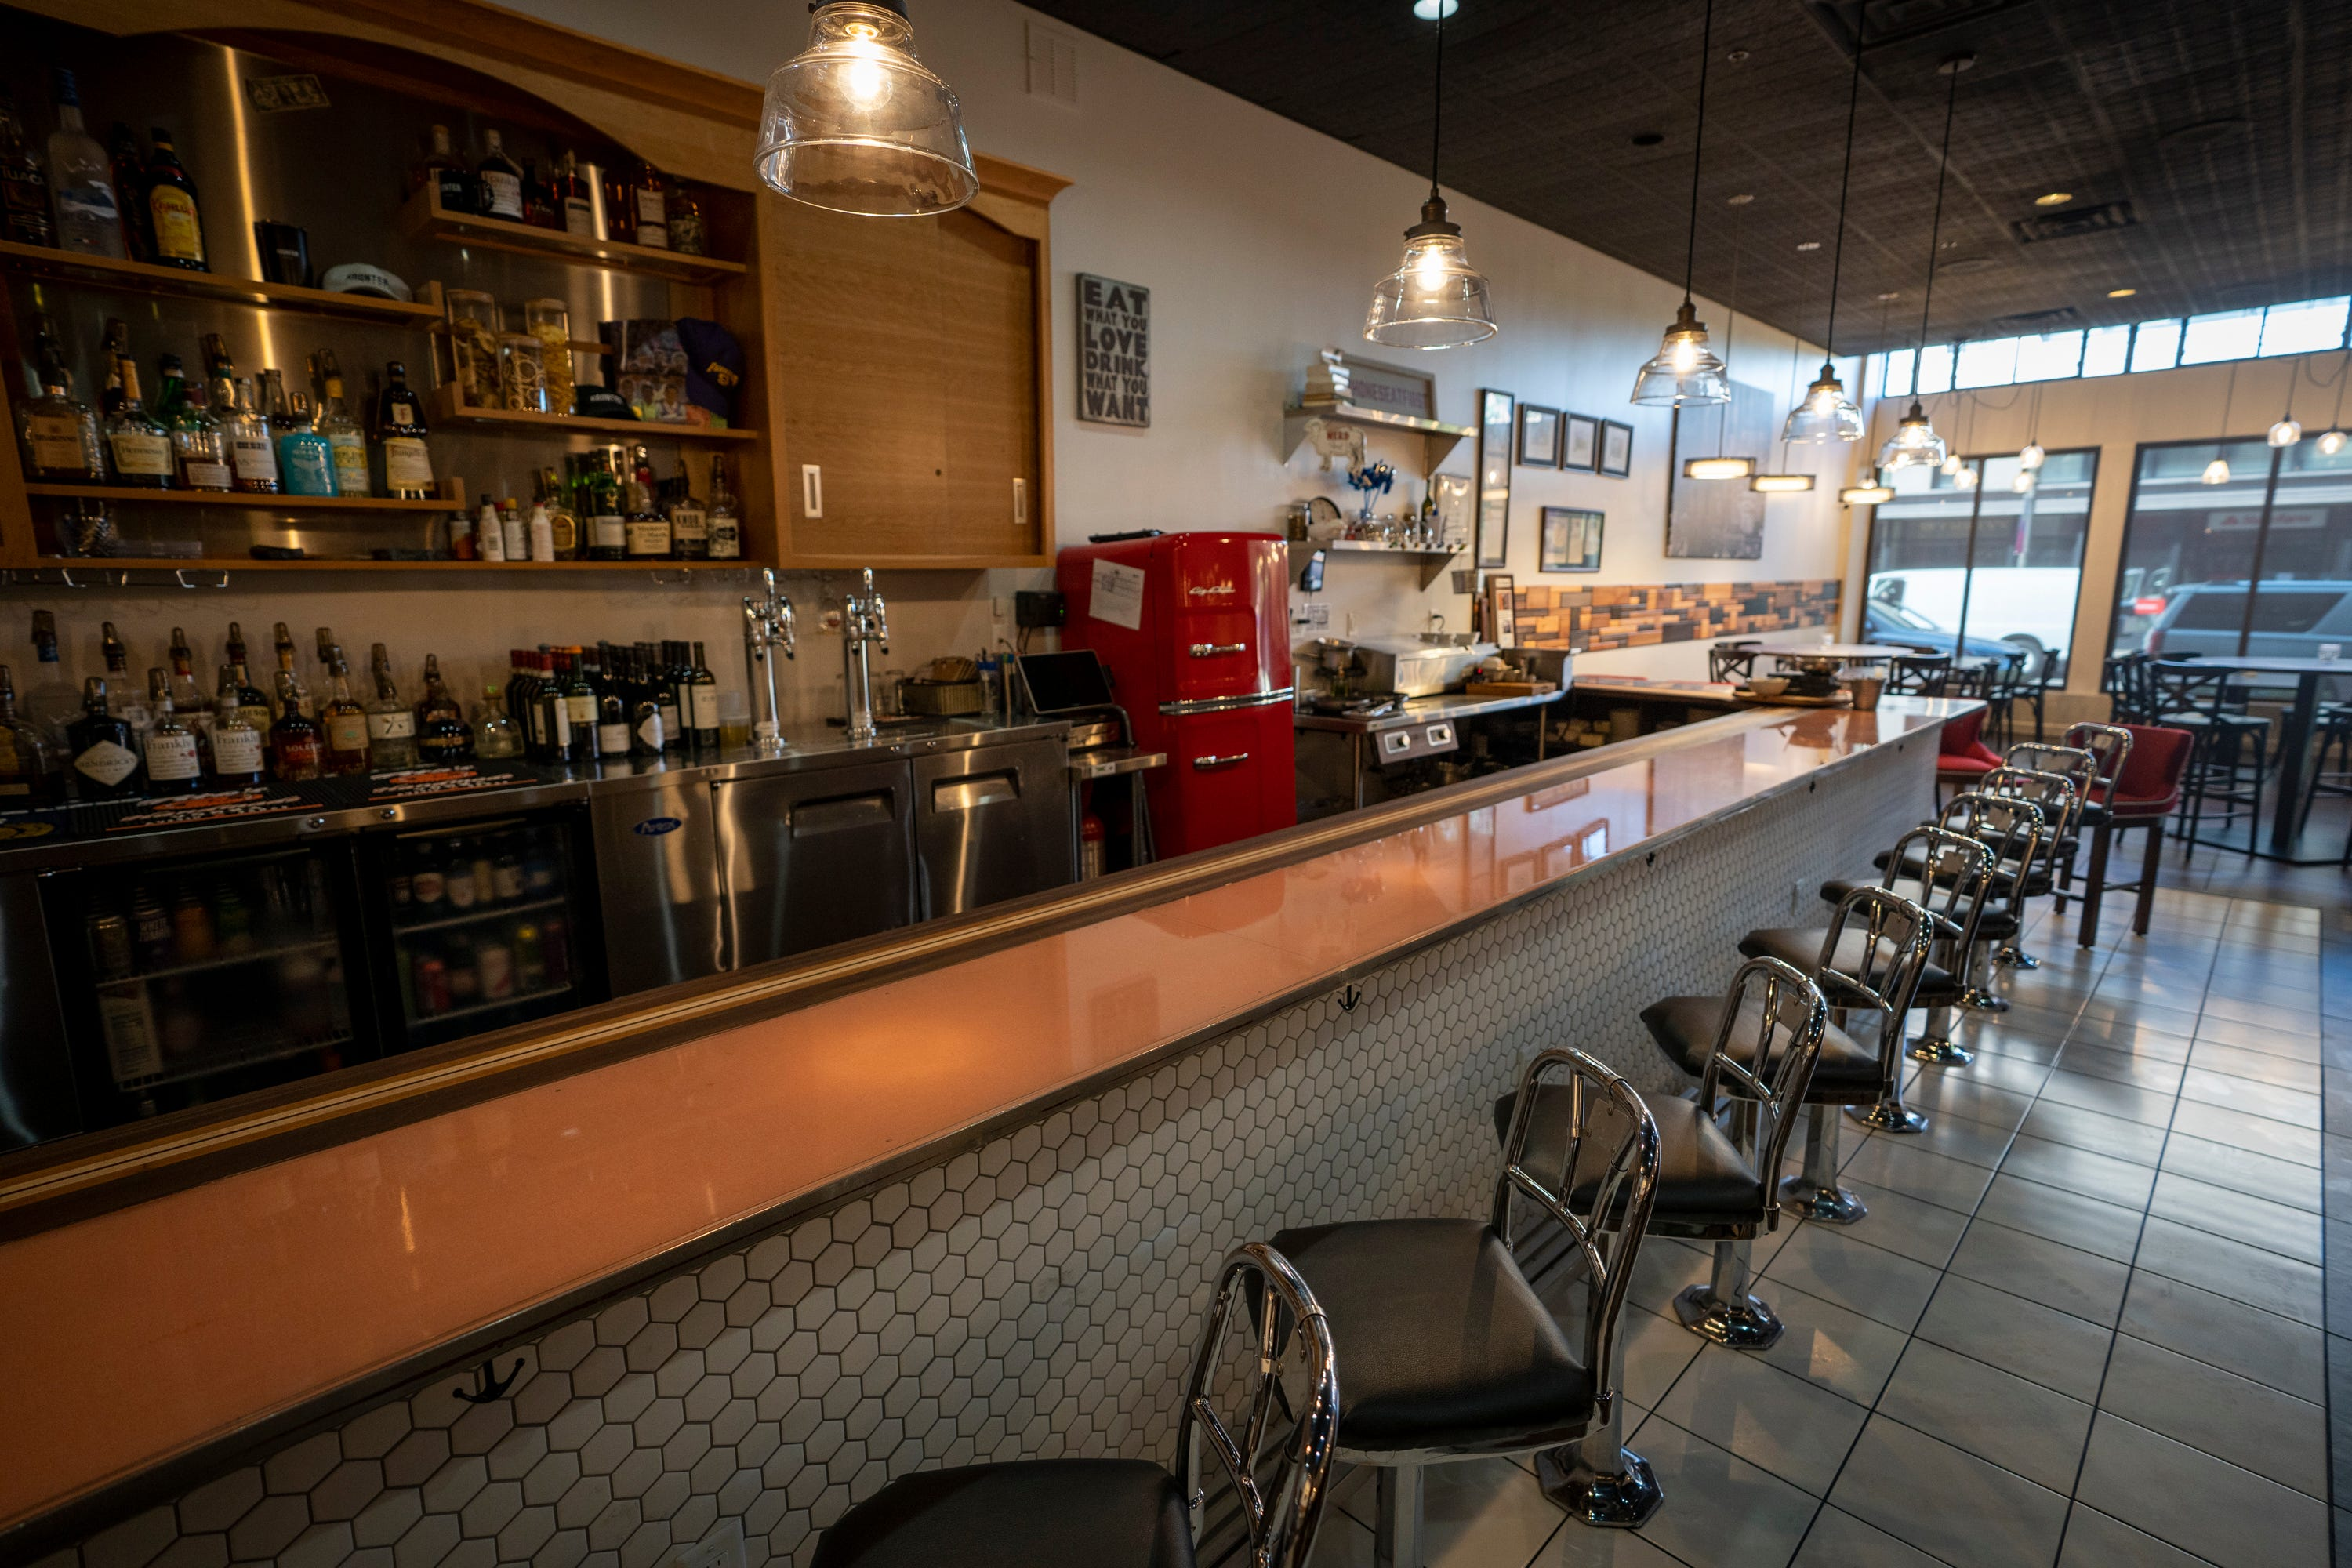 The original McCrory's Five & Dime lunch counter, restored and preserved by the owners of Kounter, is the restaurant's centerpiece in Rock Hill, S.C., on Aug. 12, 2021.